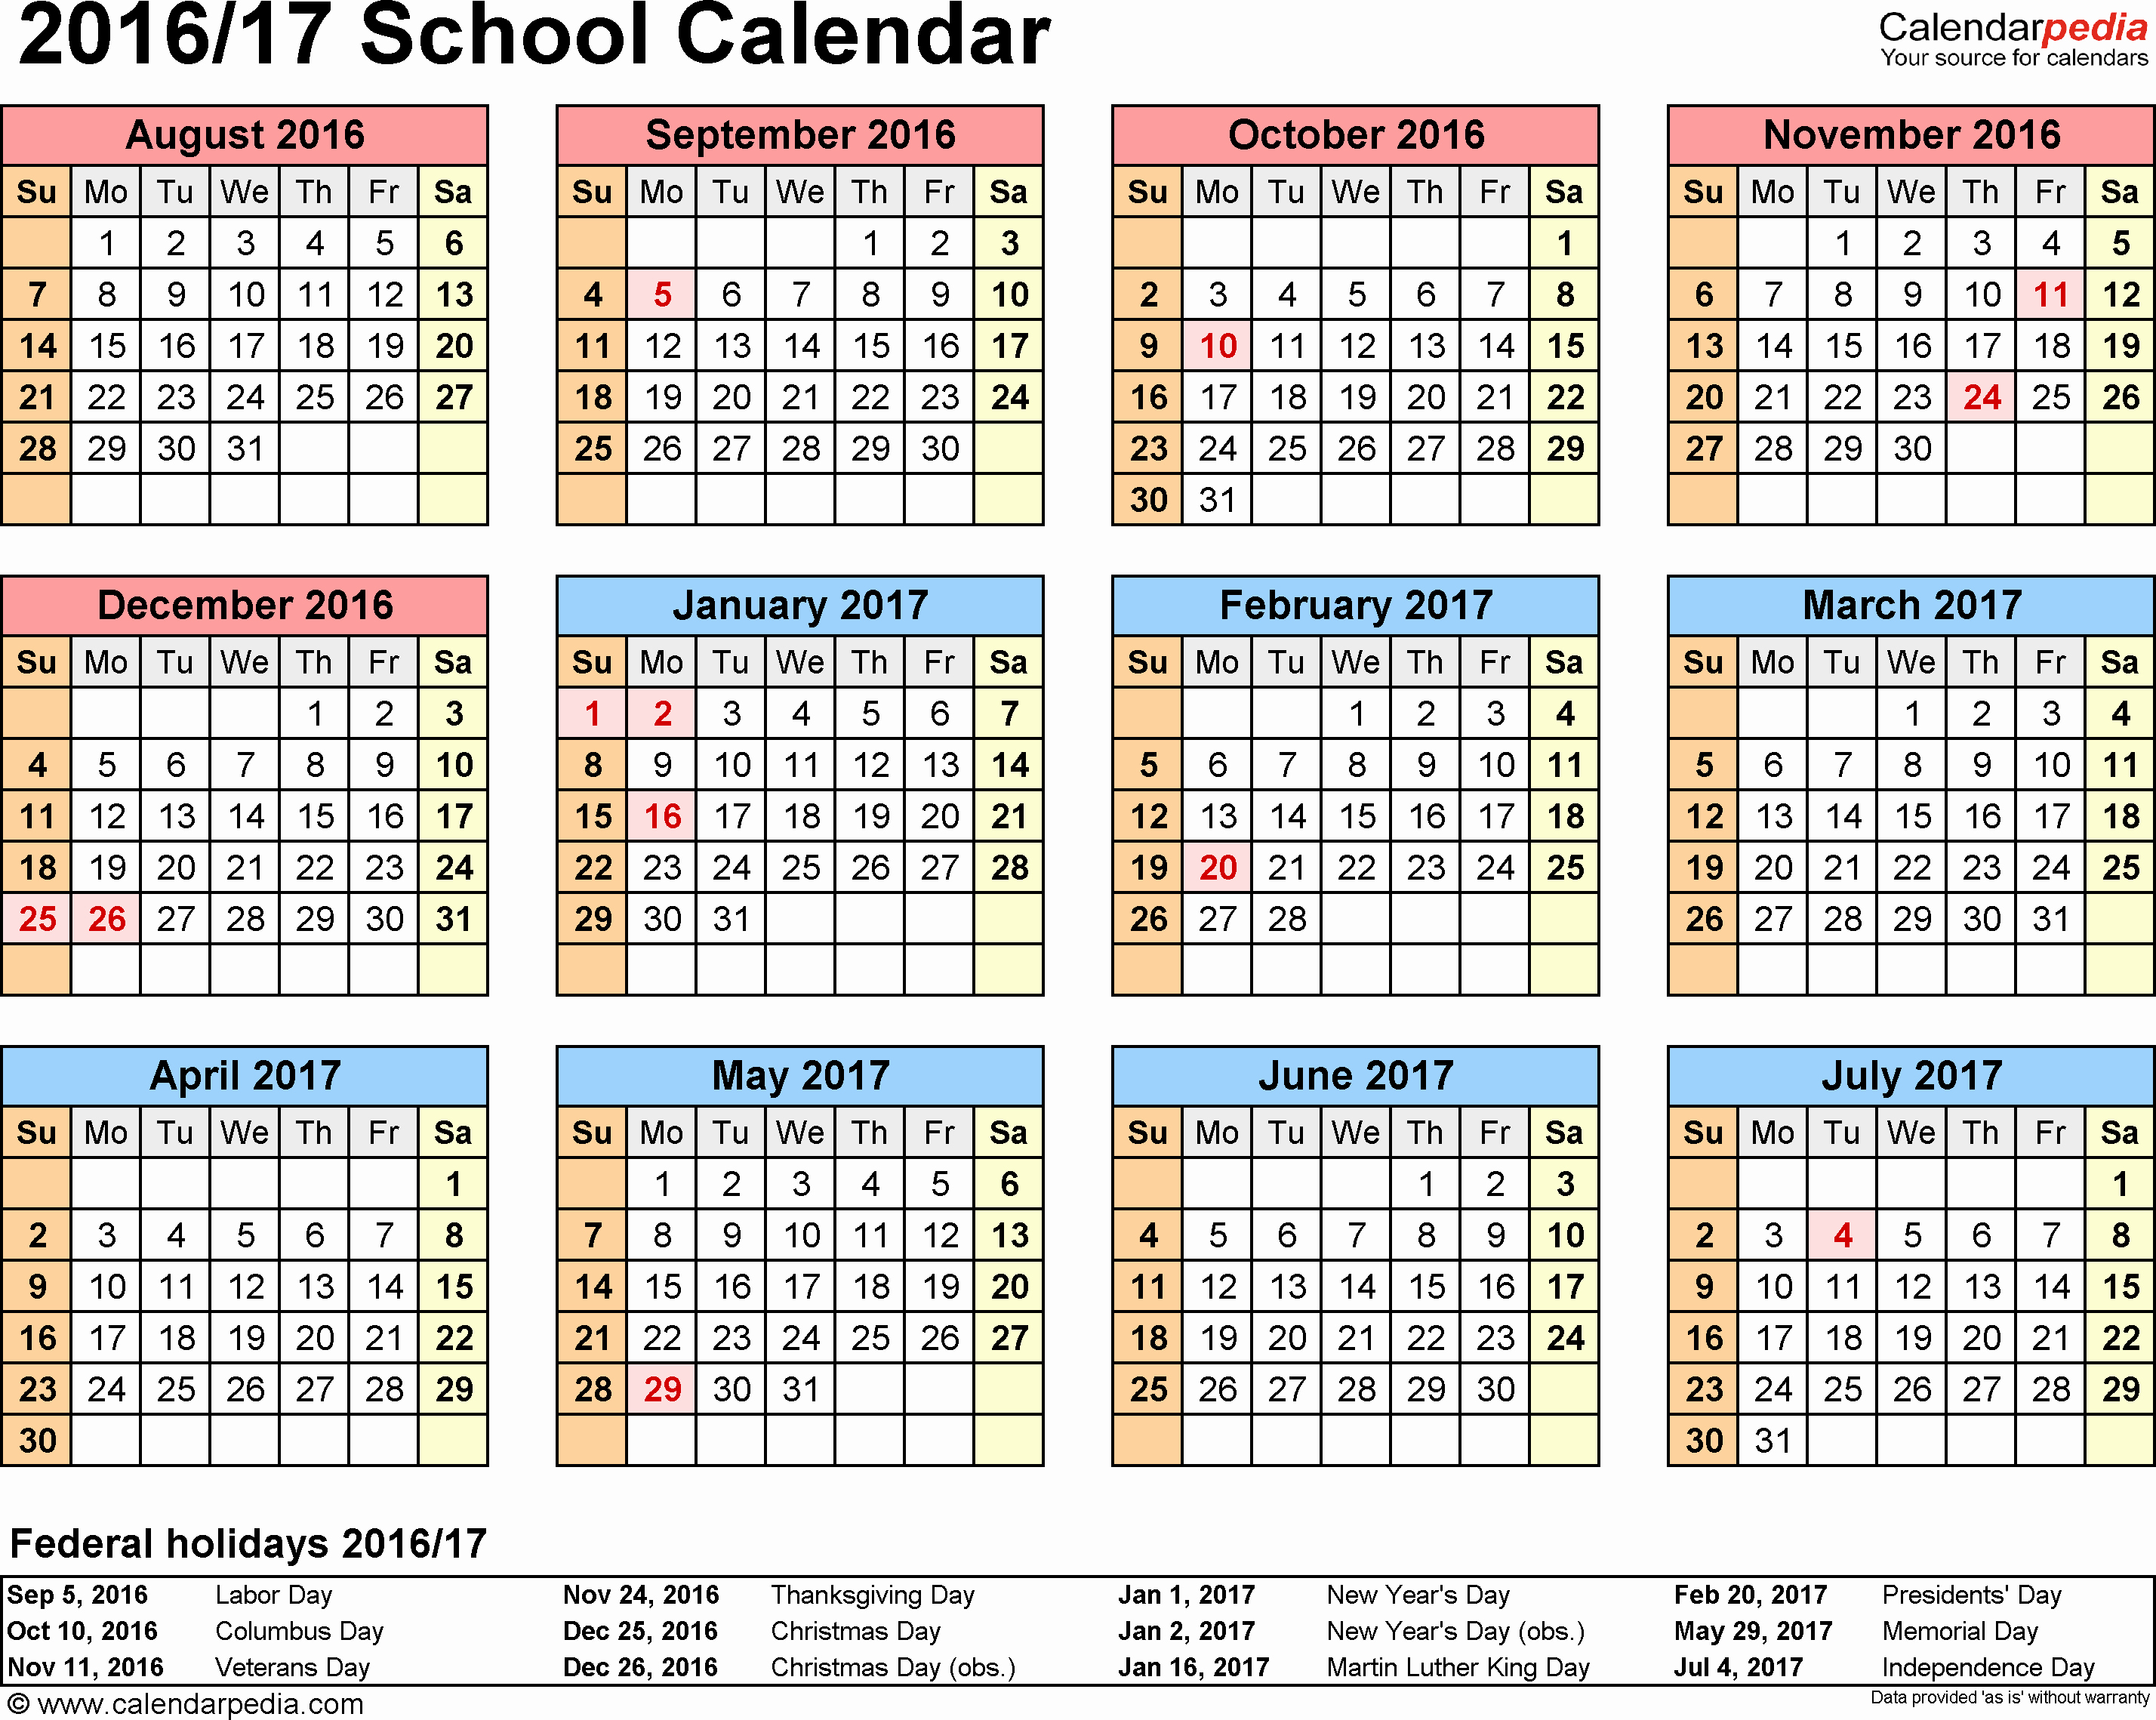 Calendar 2016-17 Template Elegant School Calendars 2016 2017 as Free Printable Pdf Templates